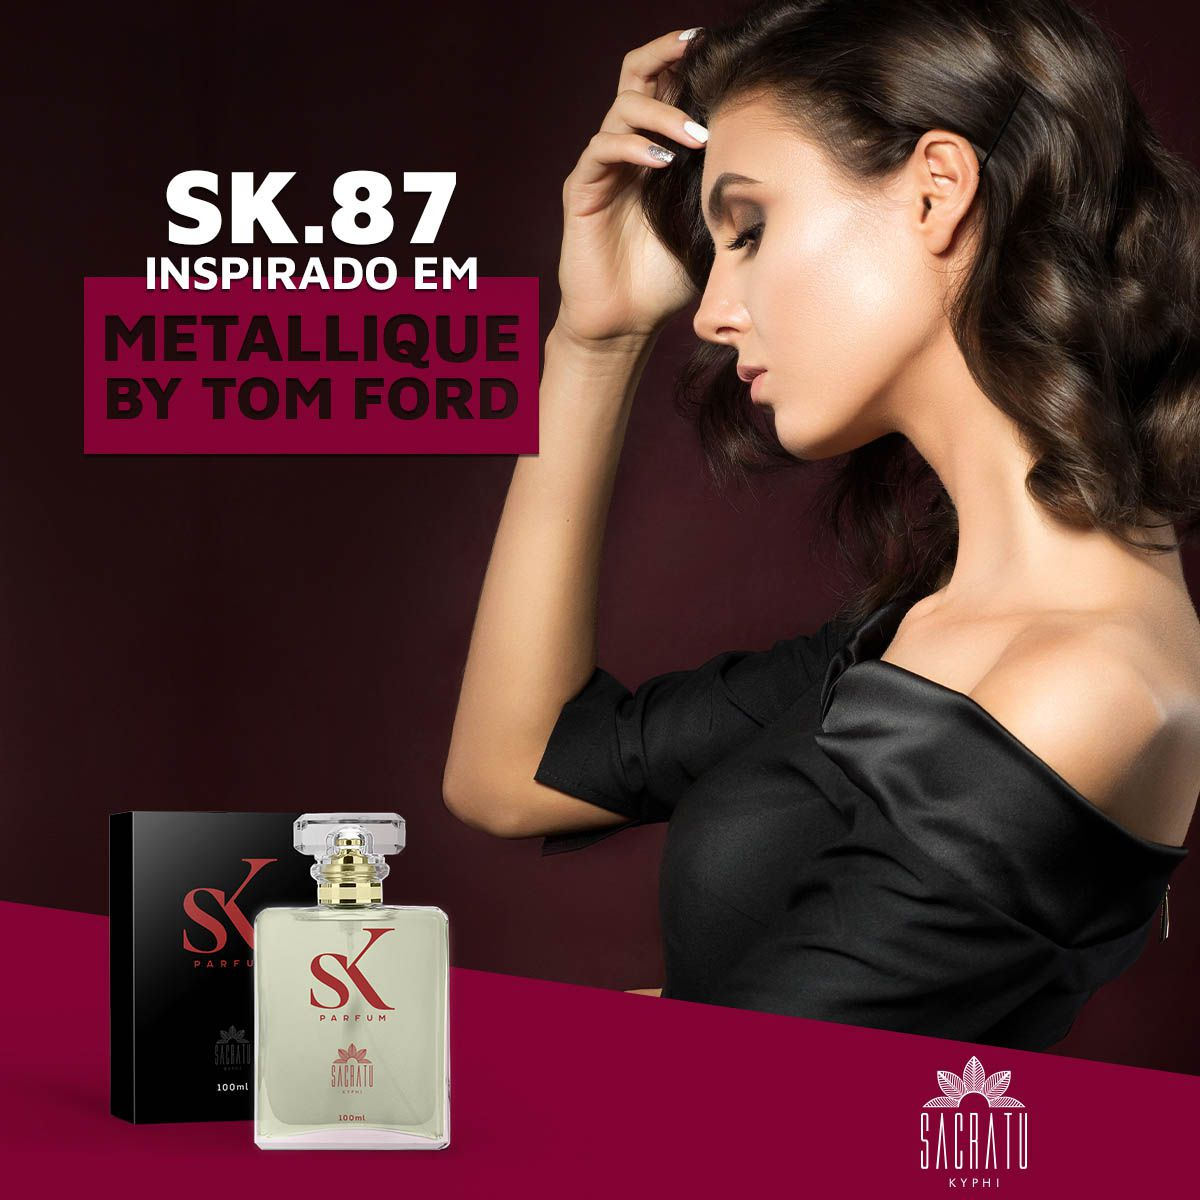 SK 87 – Inspirado em Metallique by Tom Ford